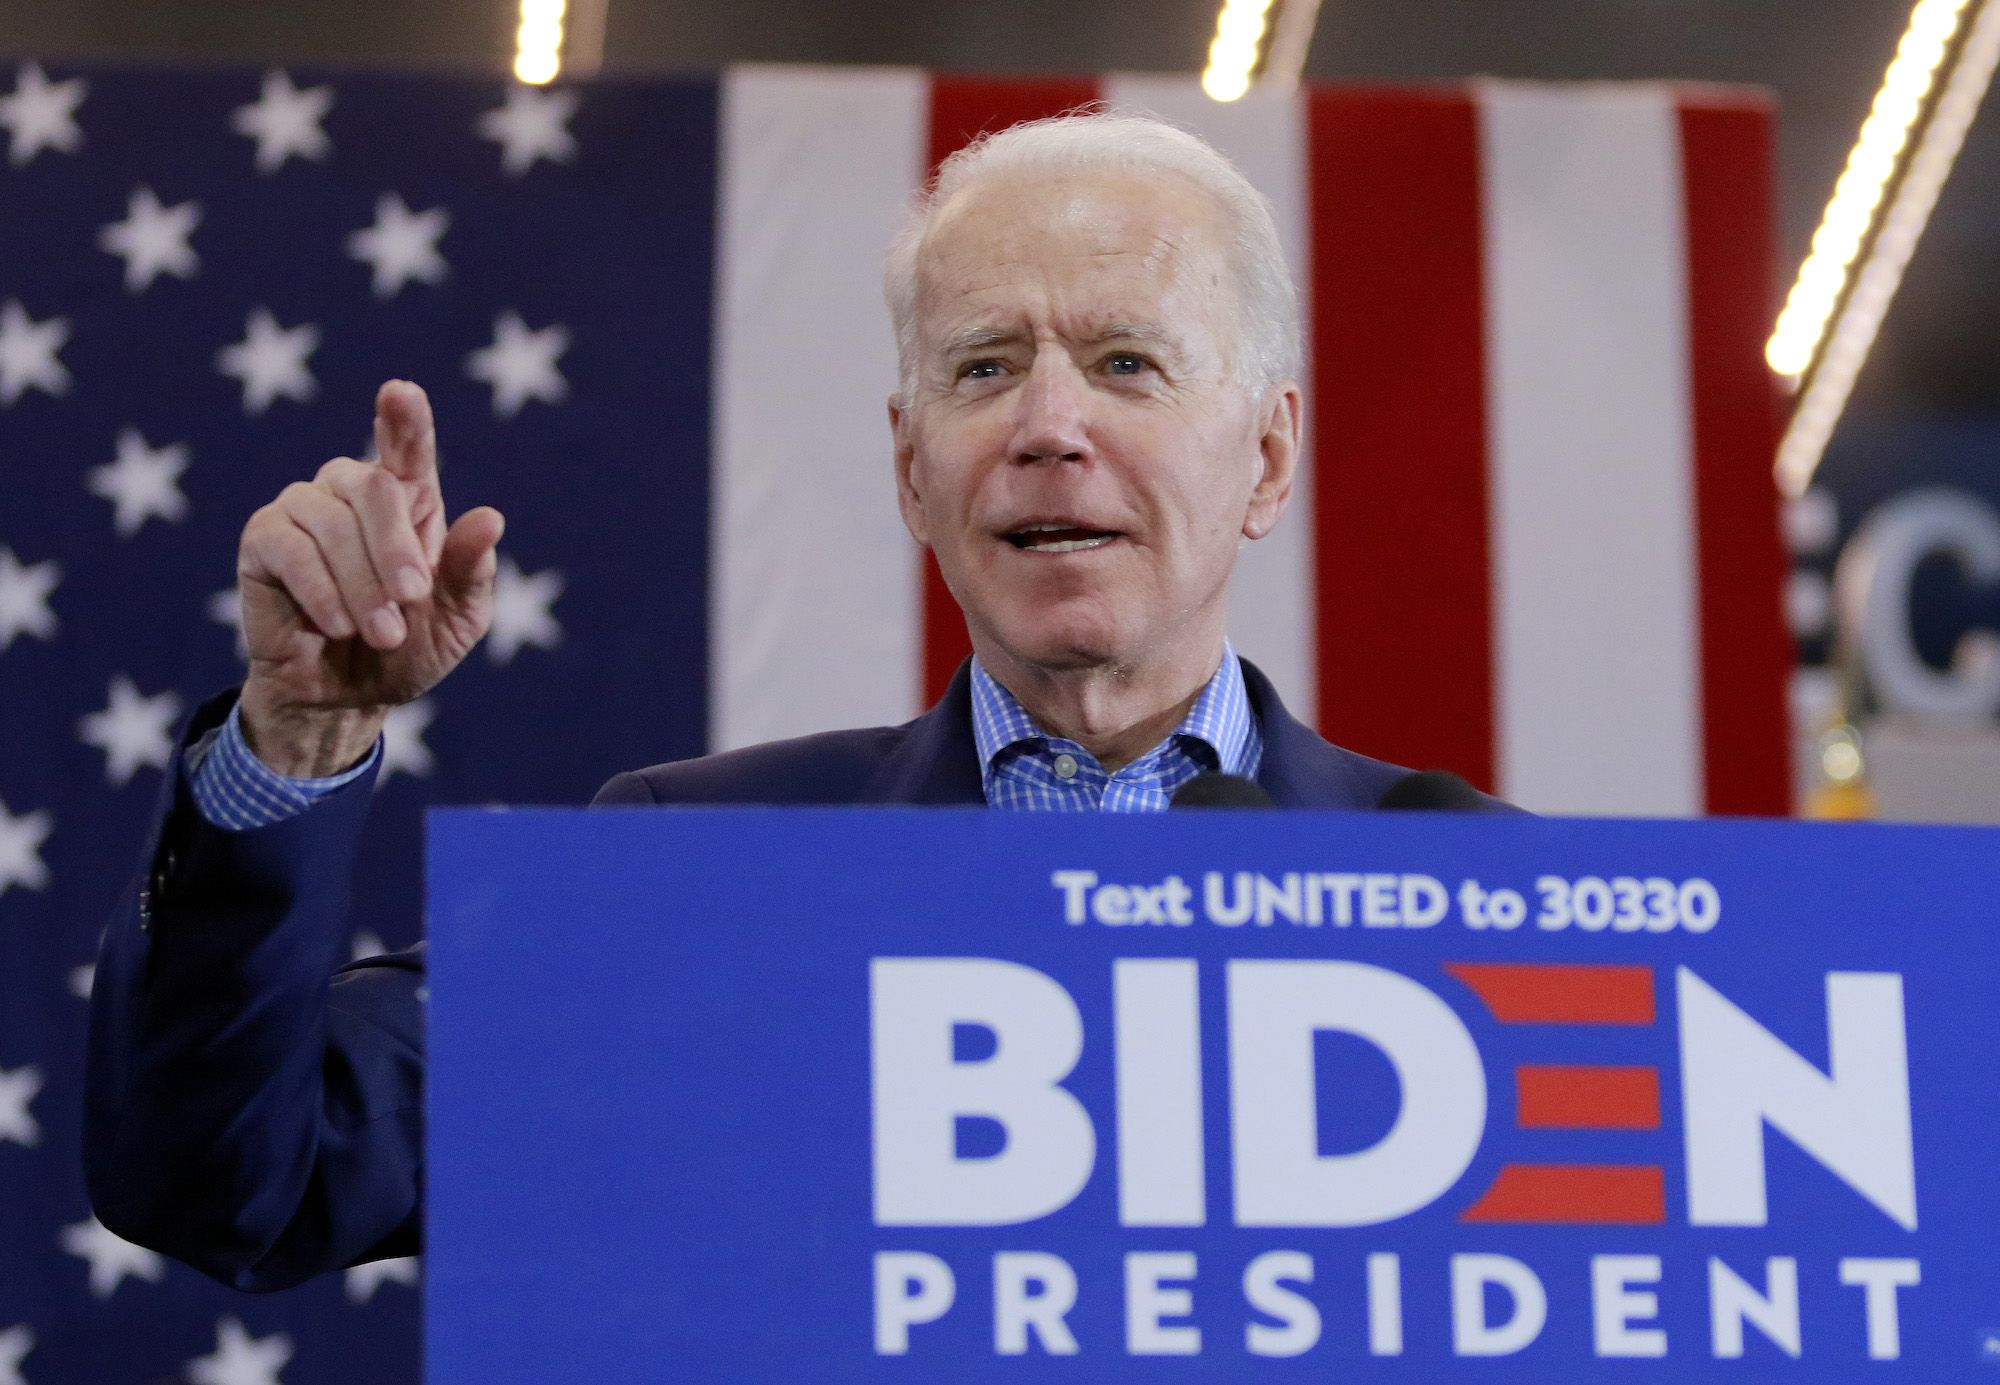 Joe Biden's Campaign Is the Result When Democrats Lack Imagination